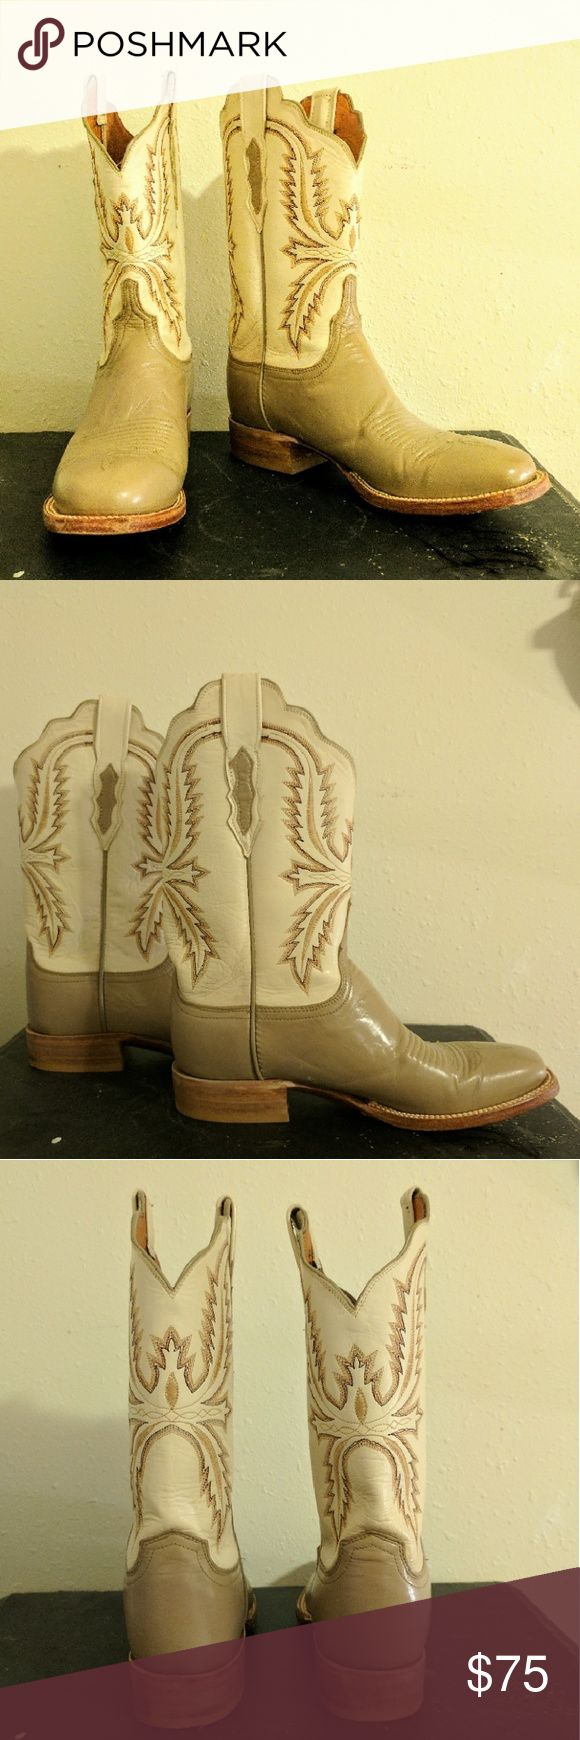 Vintage Women's Cowboy Boots Super cute vintage genuine leather cowboy boots. In excellent condition and have only been worn a few times. The boots run narrow which can be seen in the last photo. Vintage Shoes Heeled Boots